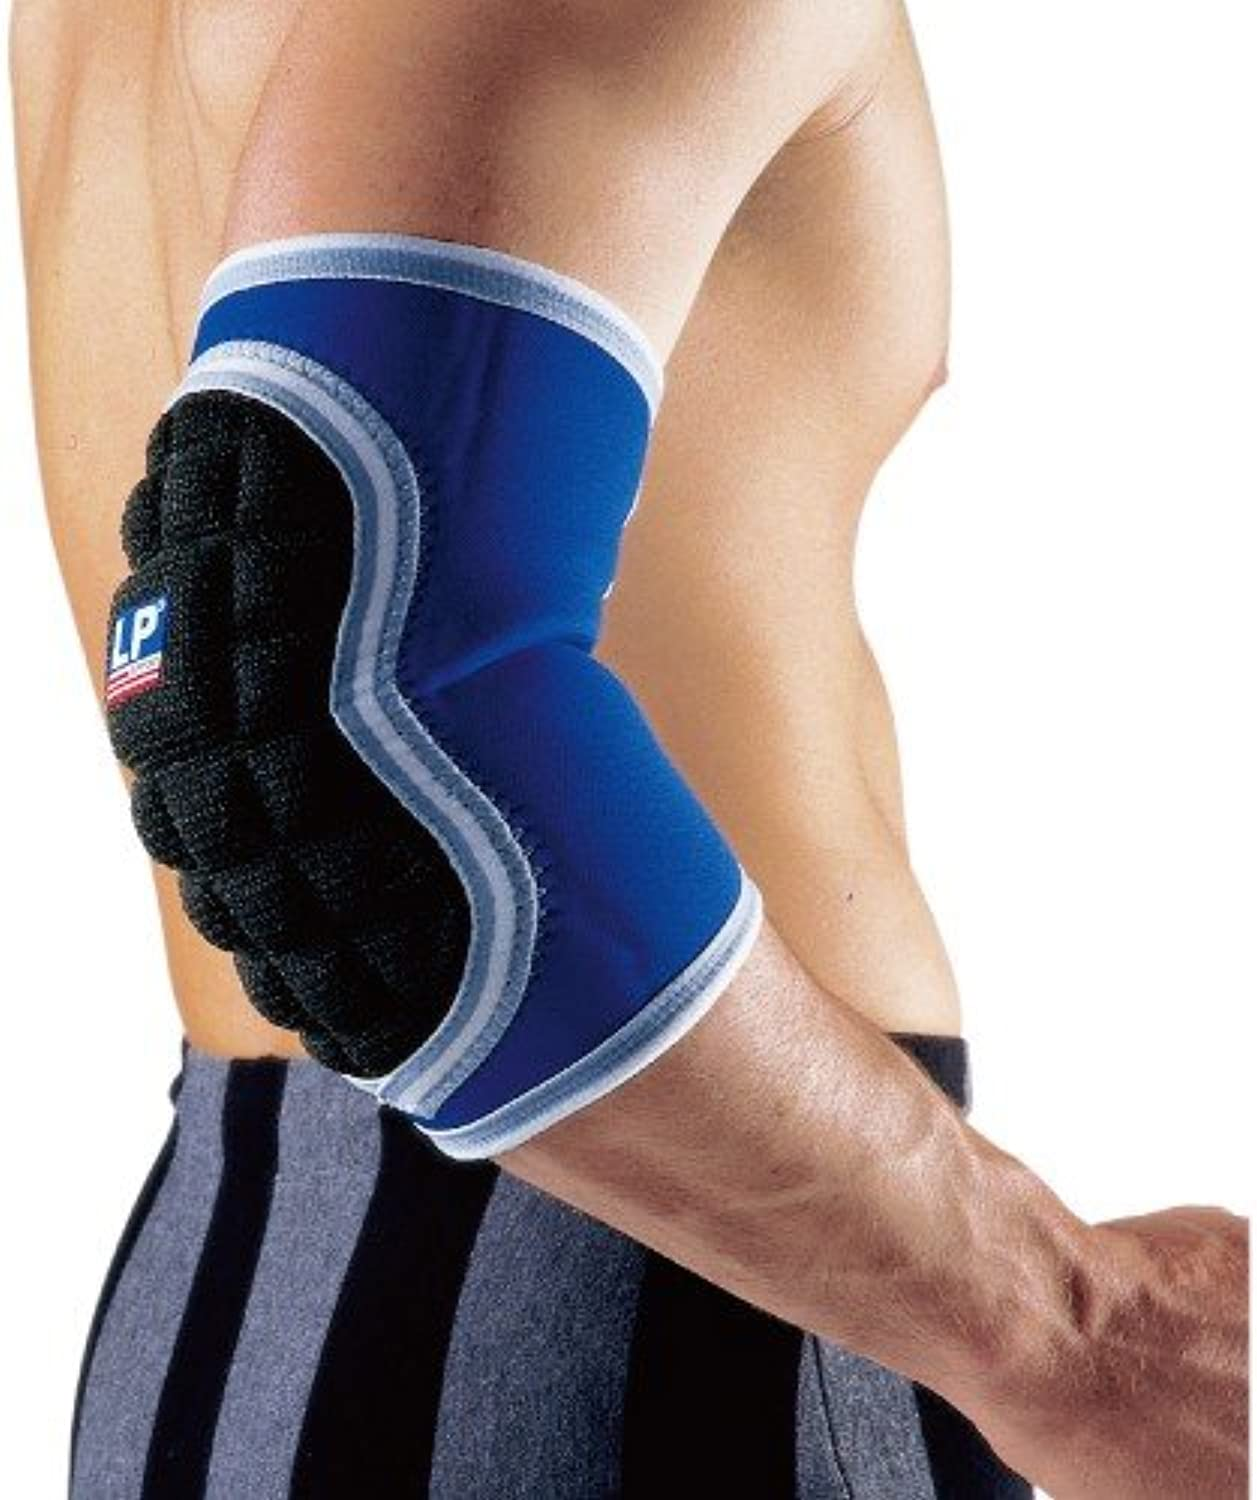 LP Deluxe Elbow Pad Size M Black blueee